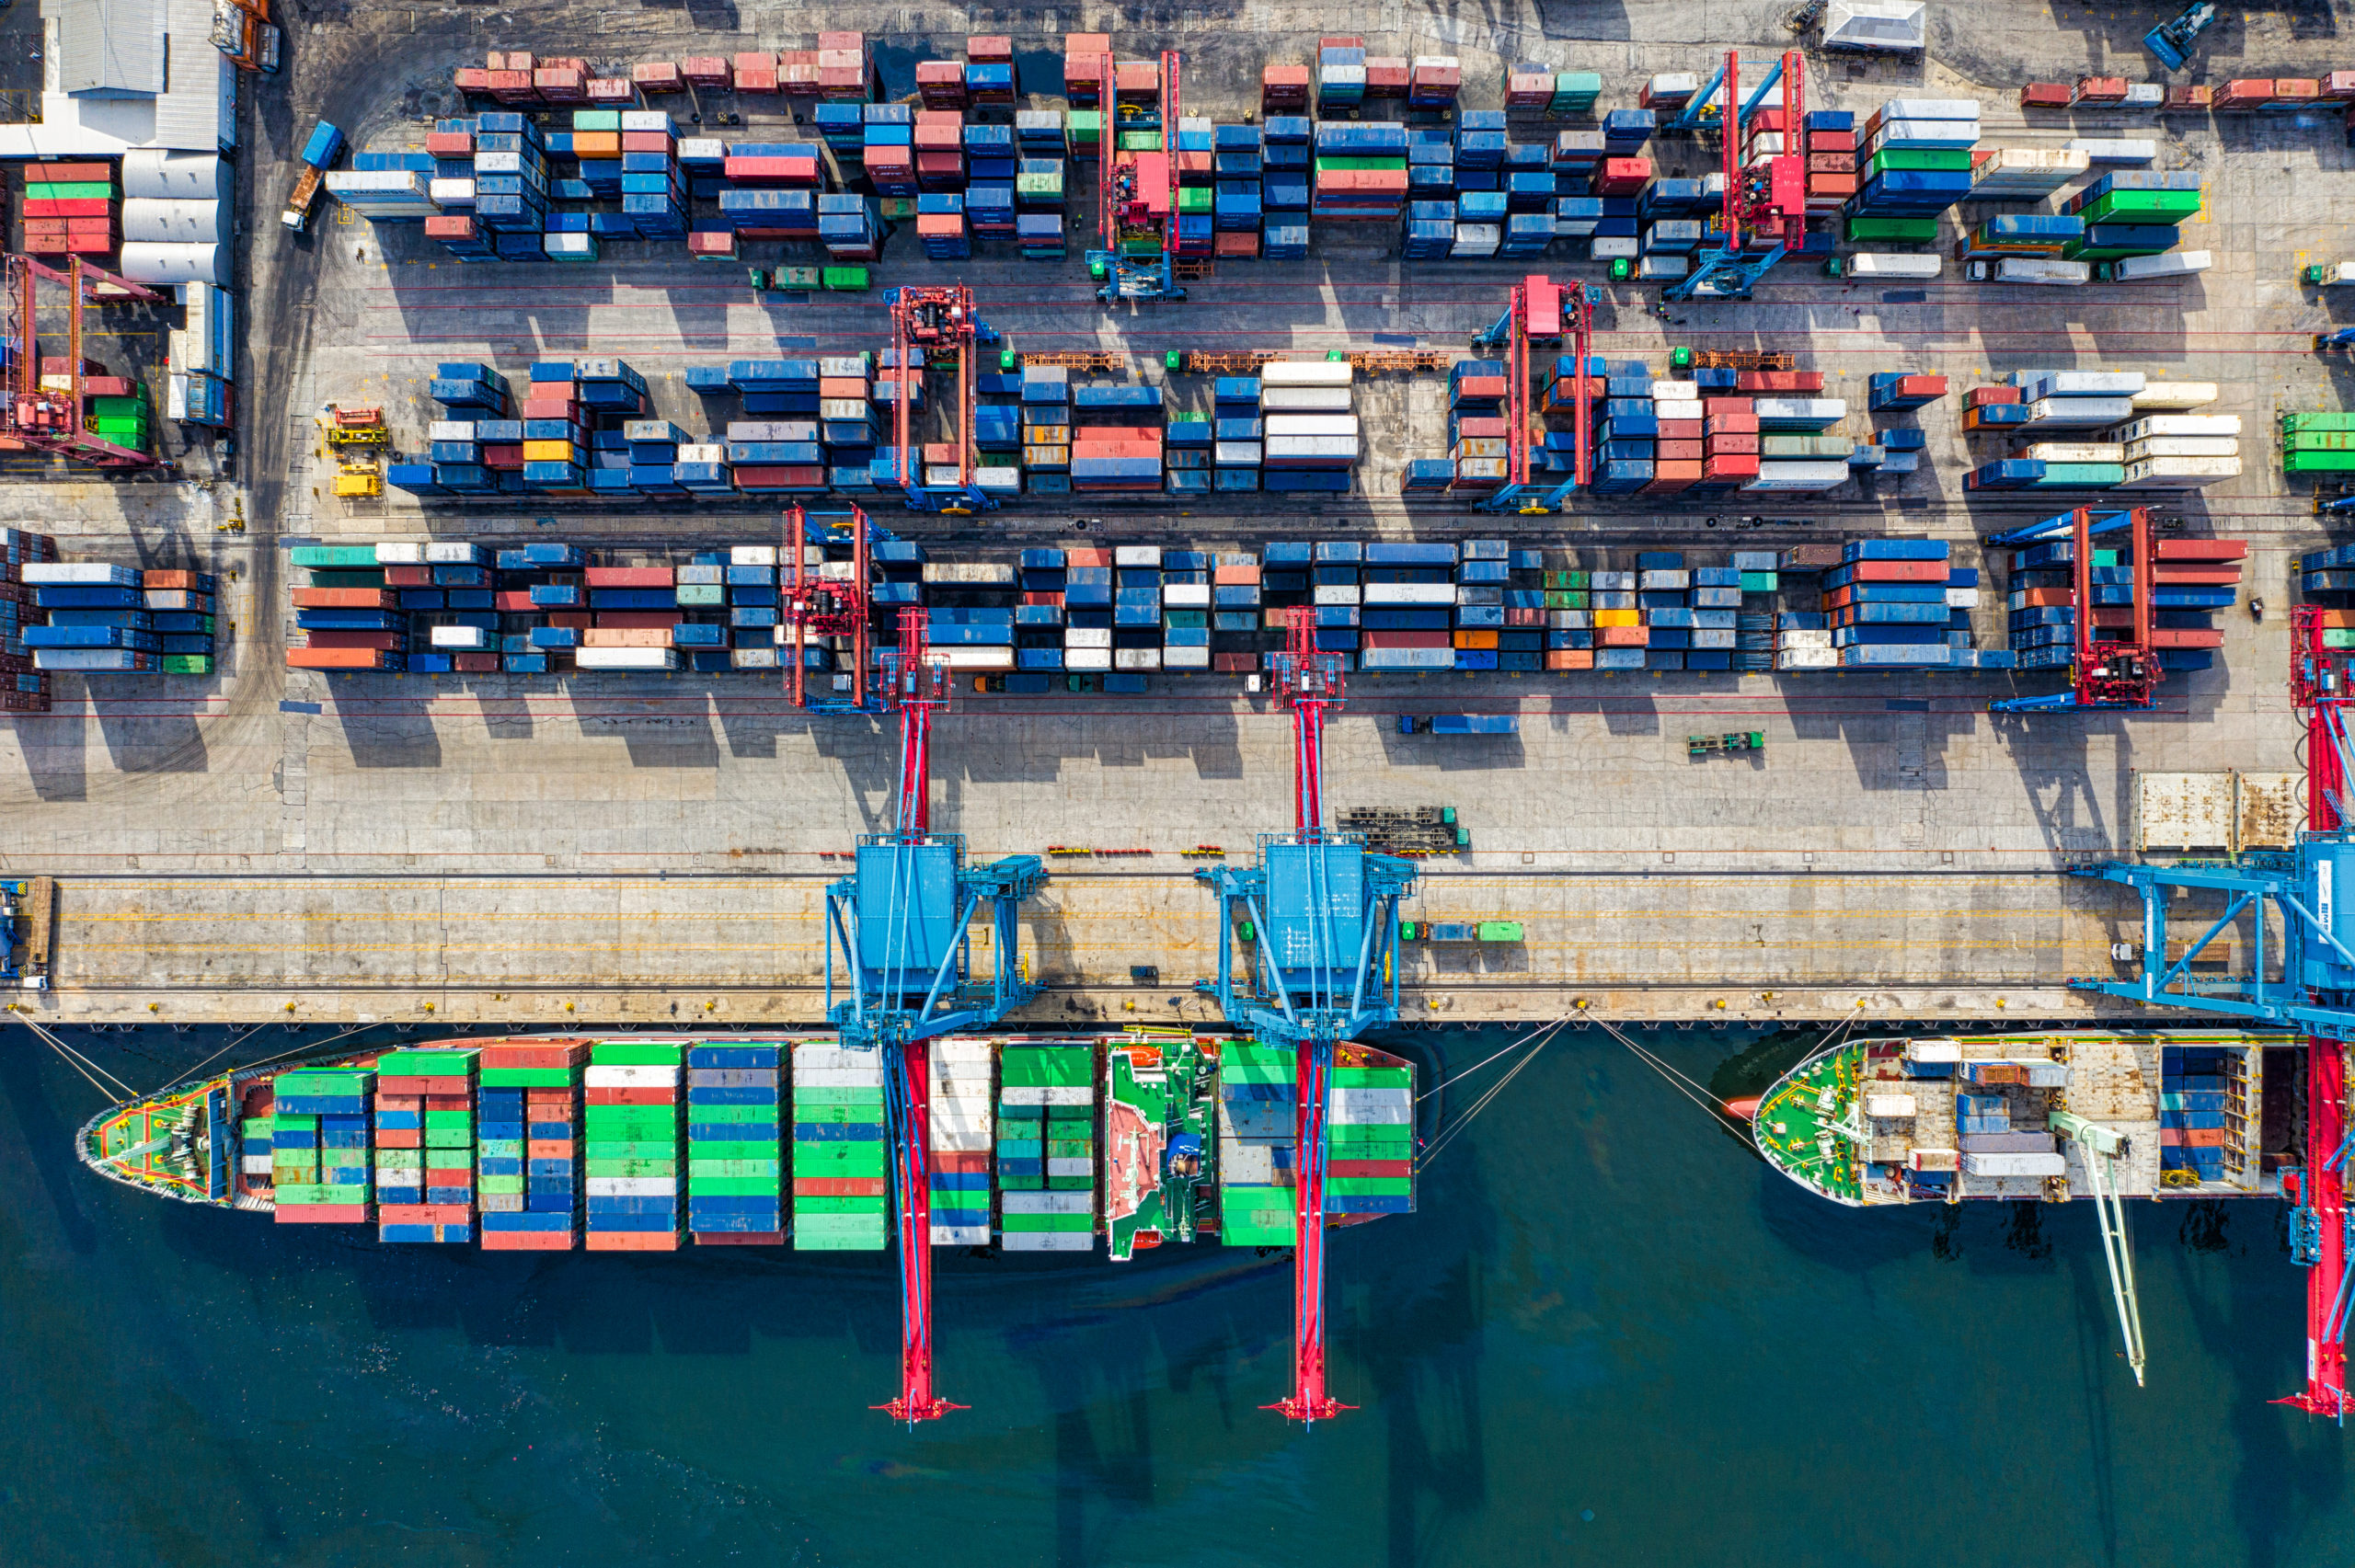 Birds eye view of freight containers